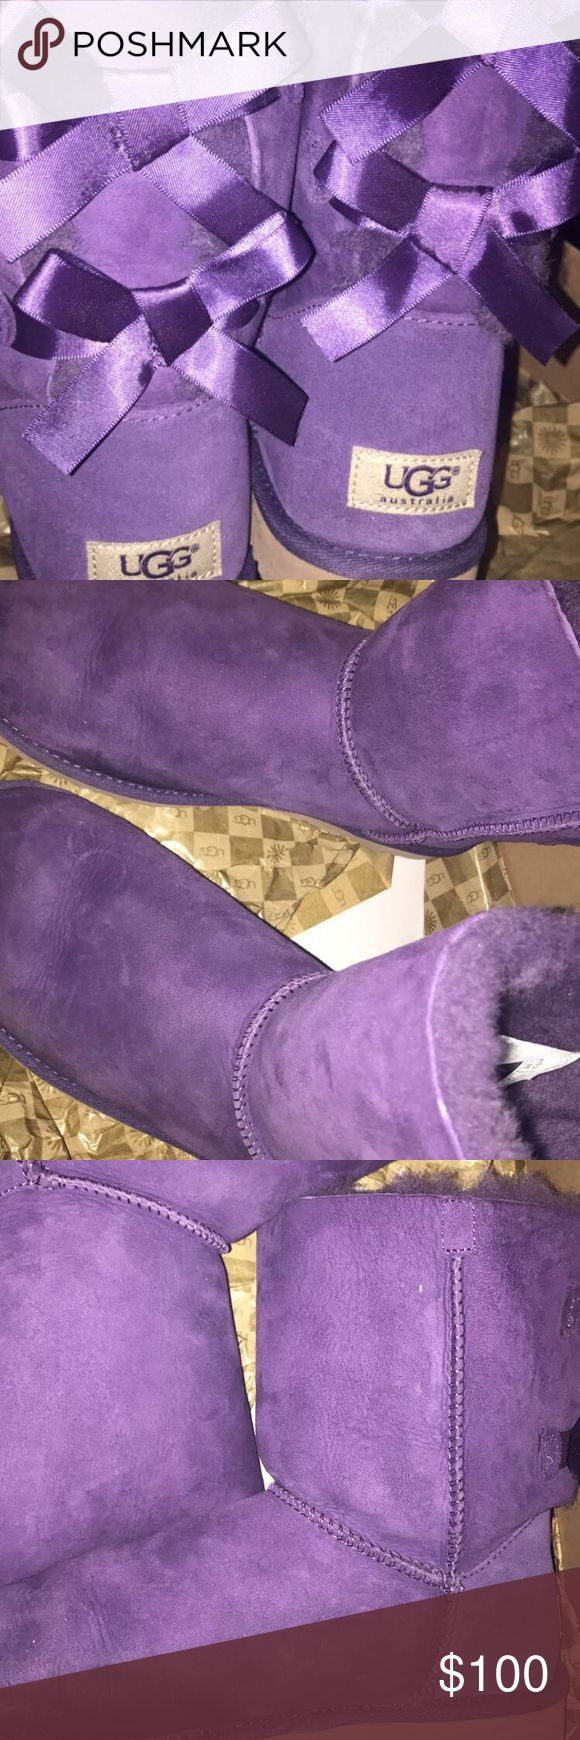 Women's Bailey Bow Purple Uggs Slight water stains can be easily restored and other than that there are no signs of wear UGG Shoes Winter & Rain Boots